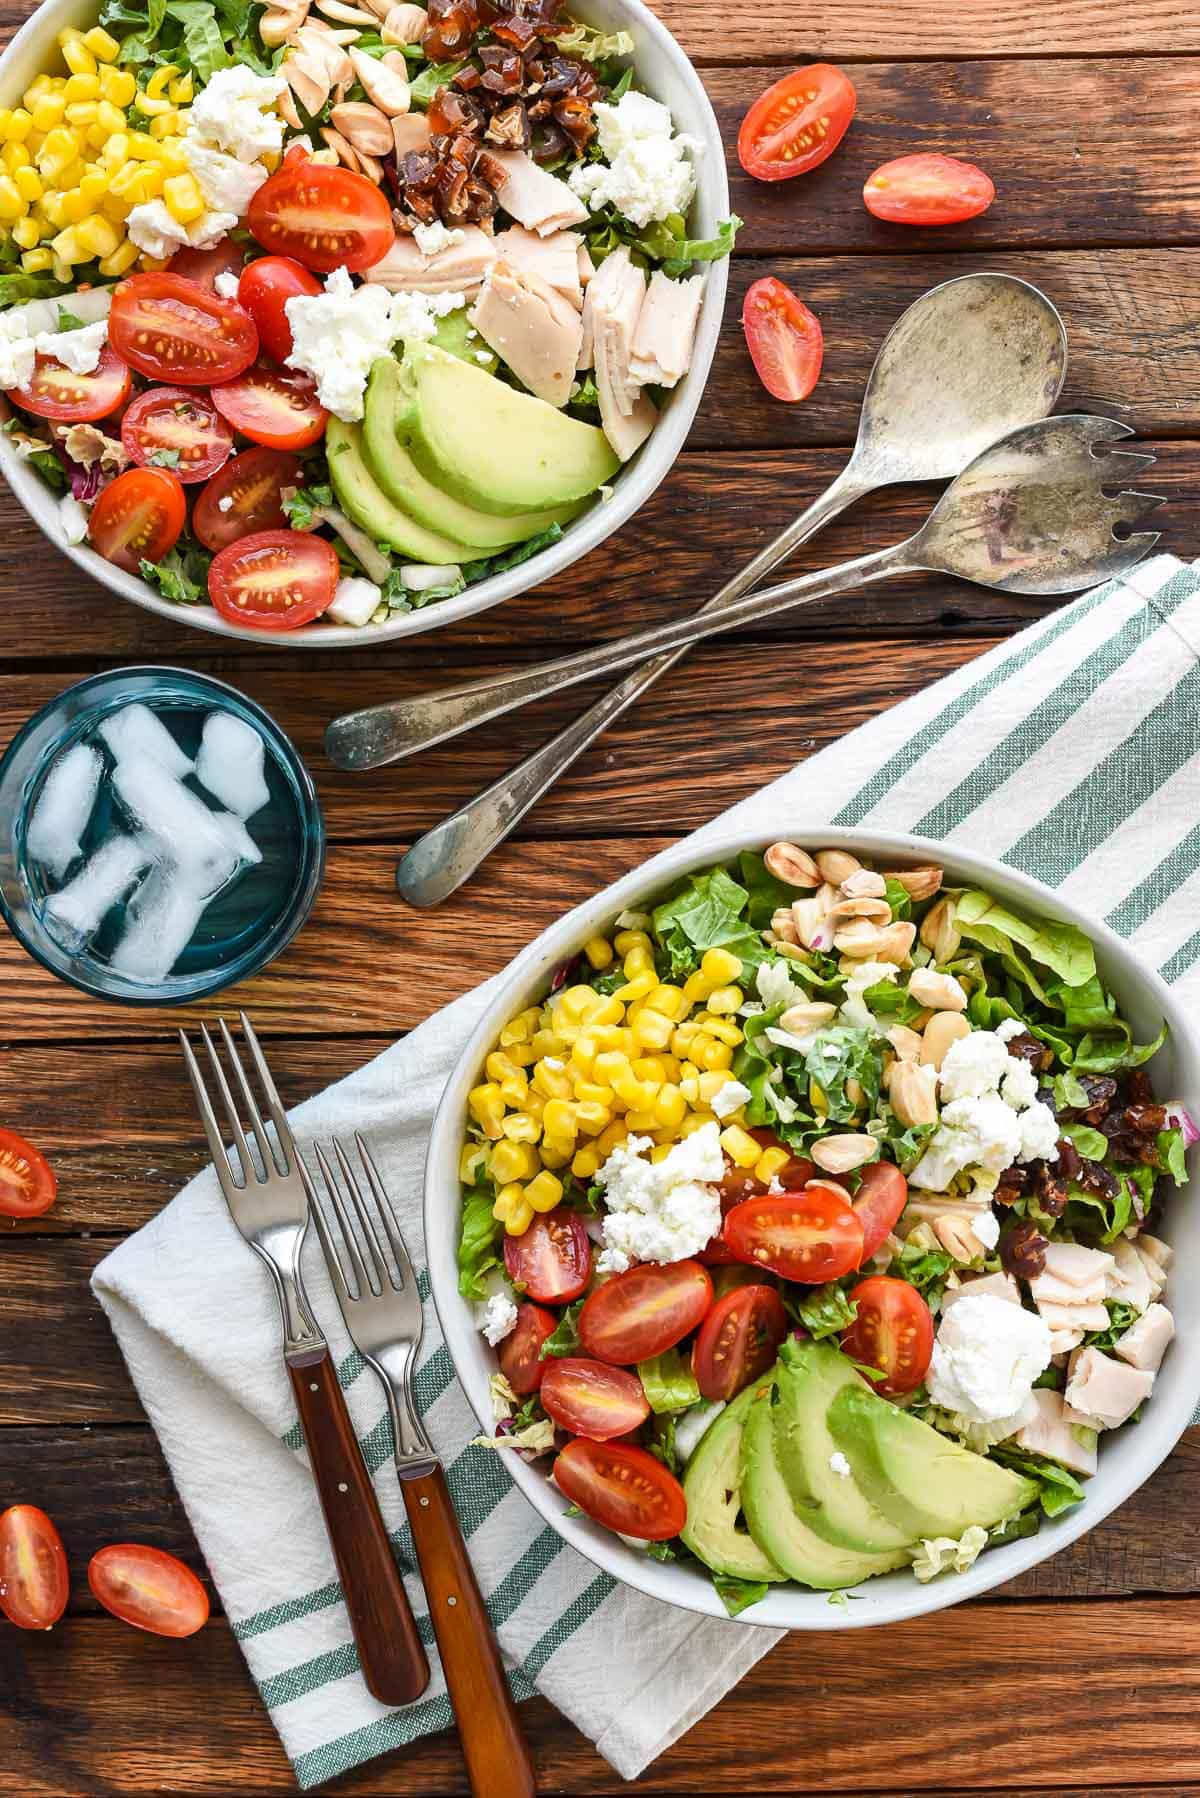 Make chopped salad like the pros with this Copy Cat Northstar Chopped Salad with Avocado, Dates, and Goat Cheese.